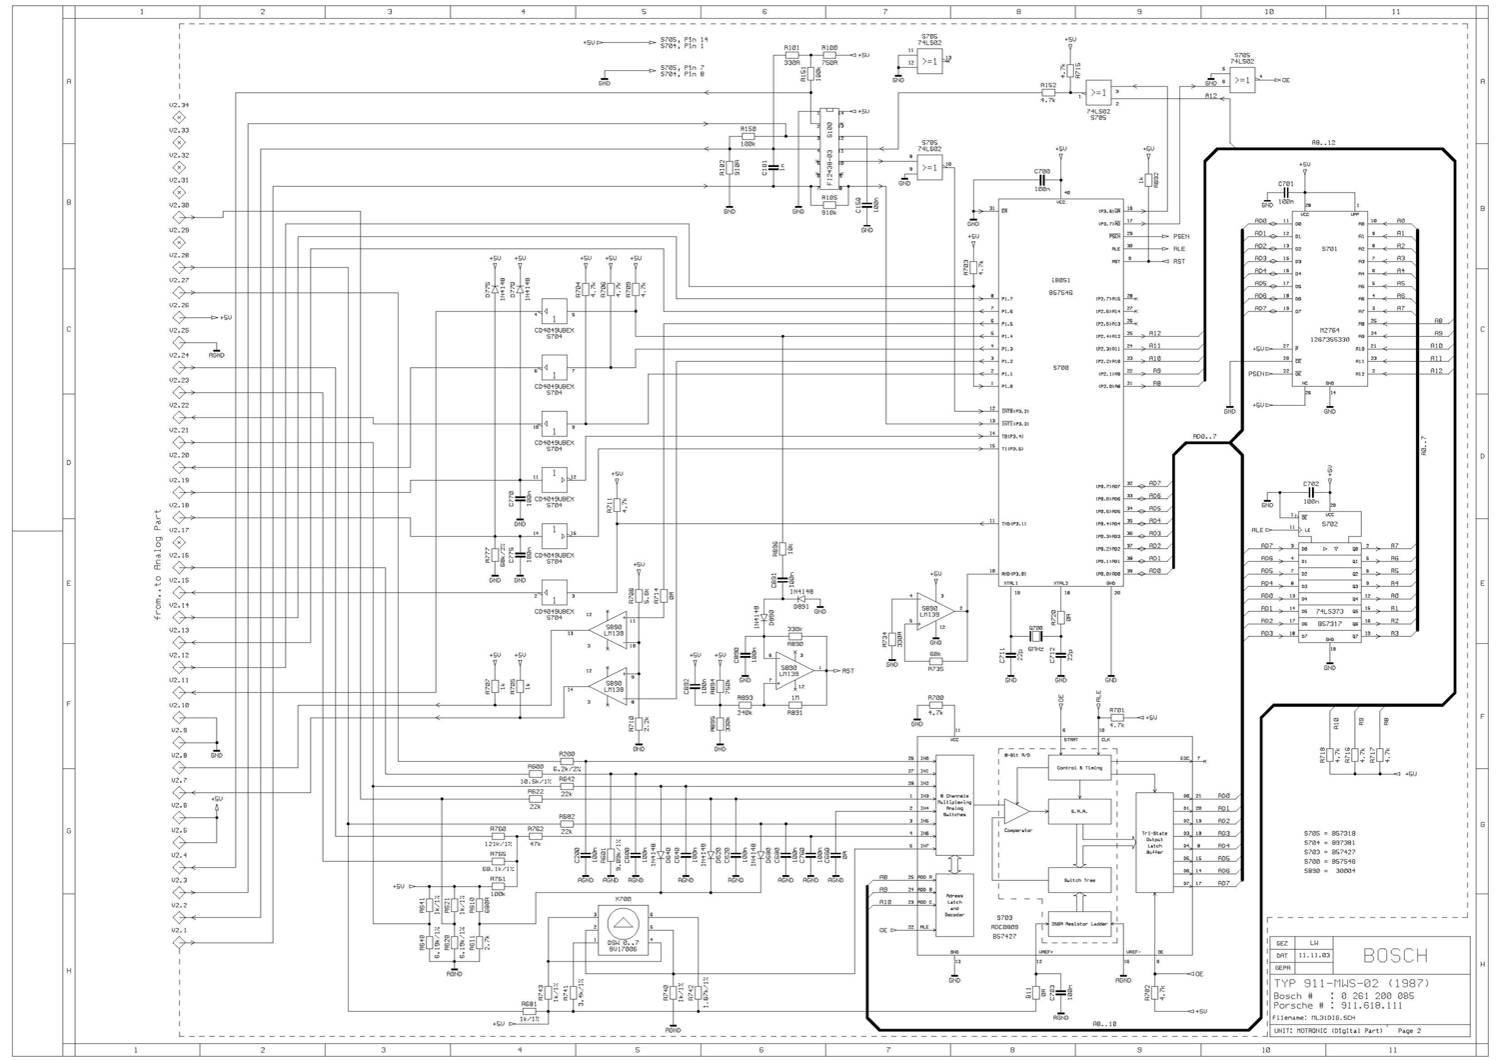 dme na 2 dme wiring diagram normally aspirated 944 944 s2 wiring diagram at soozxer.org